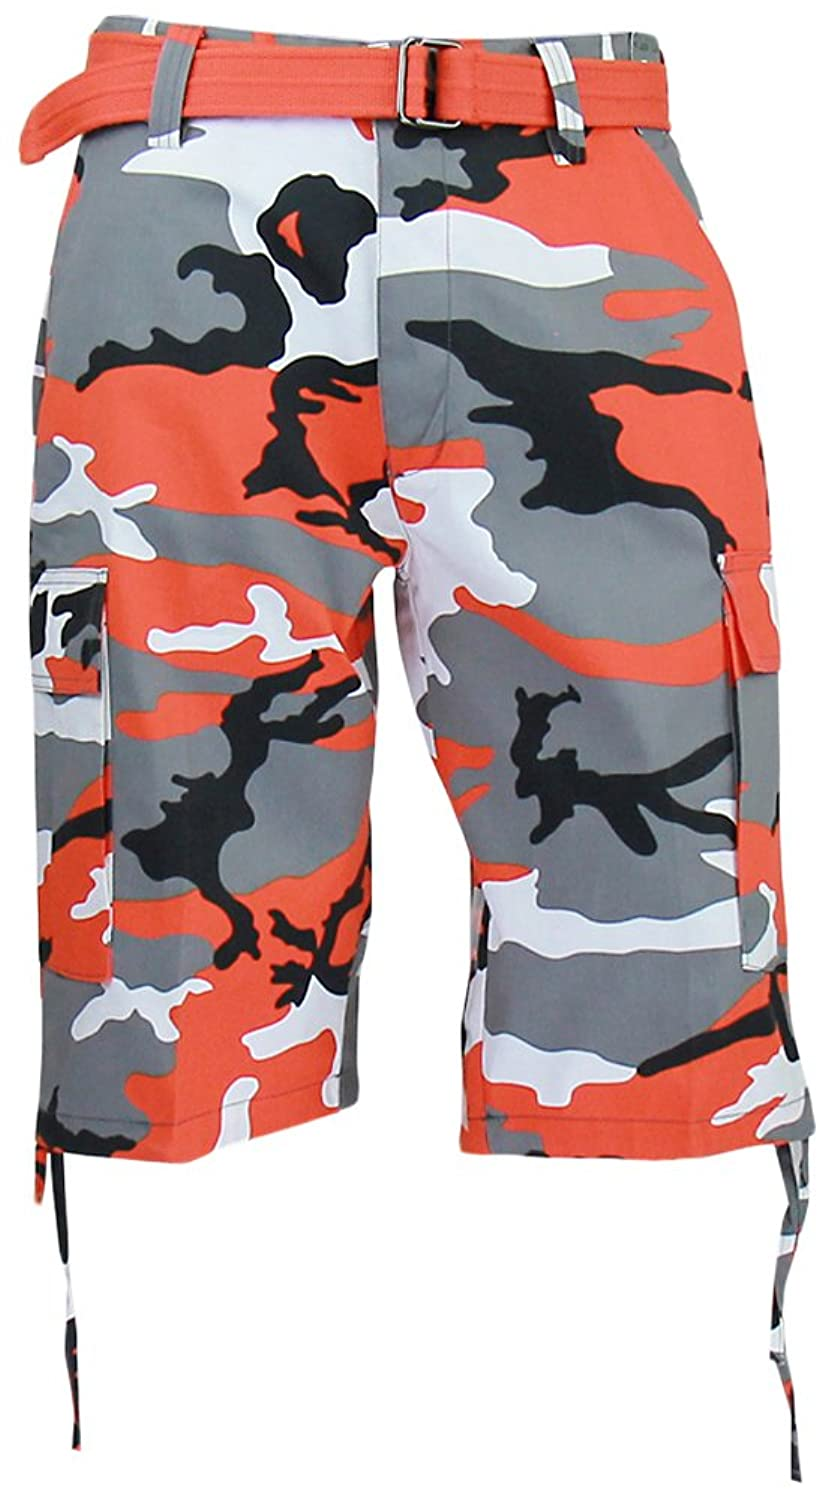 9244632892 Regal Wear the leader in streetwear wants you stand out from the pack with  these camouflage cargo shorts available in so many cool vibrant colors.